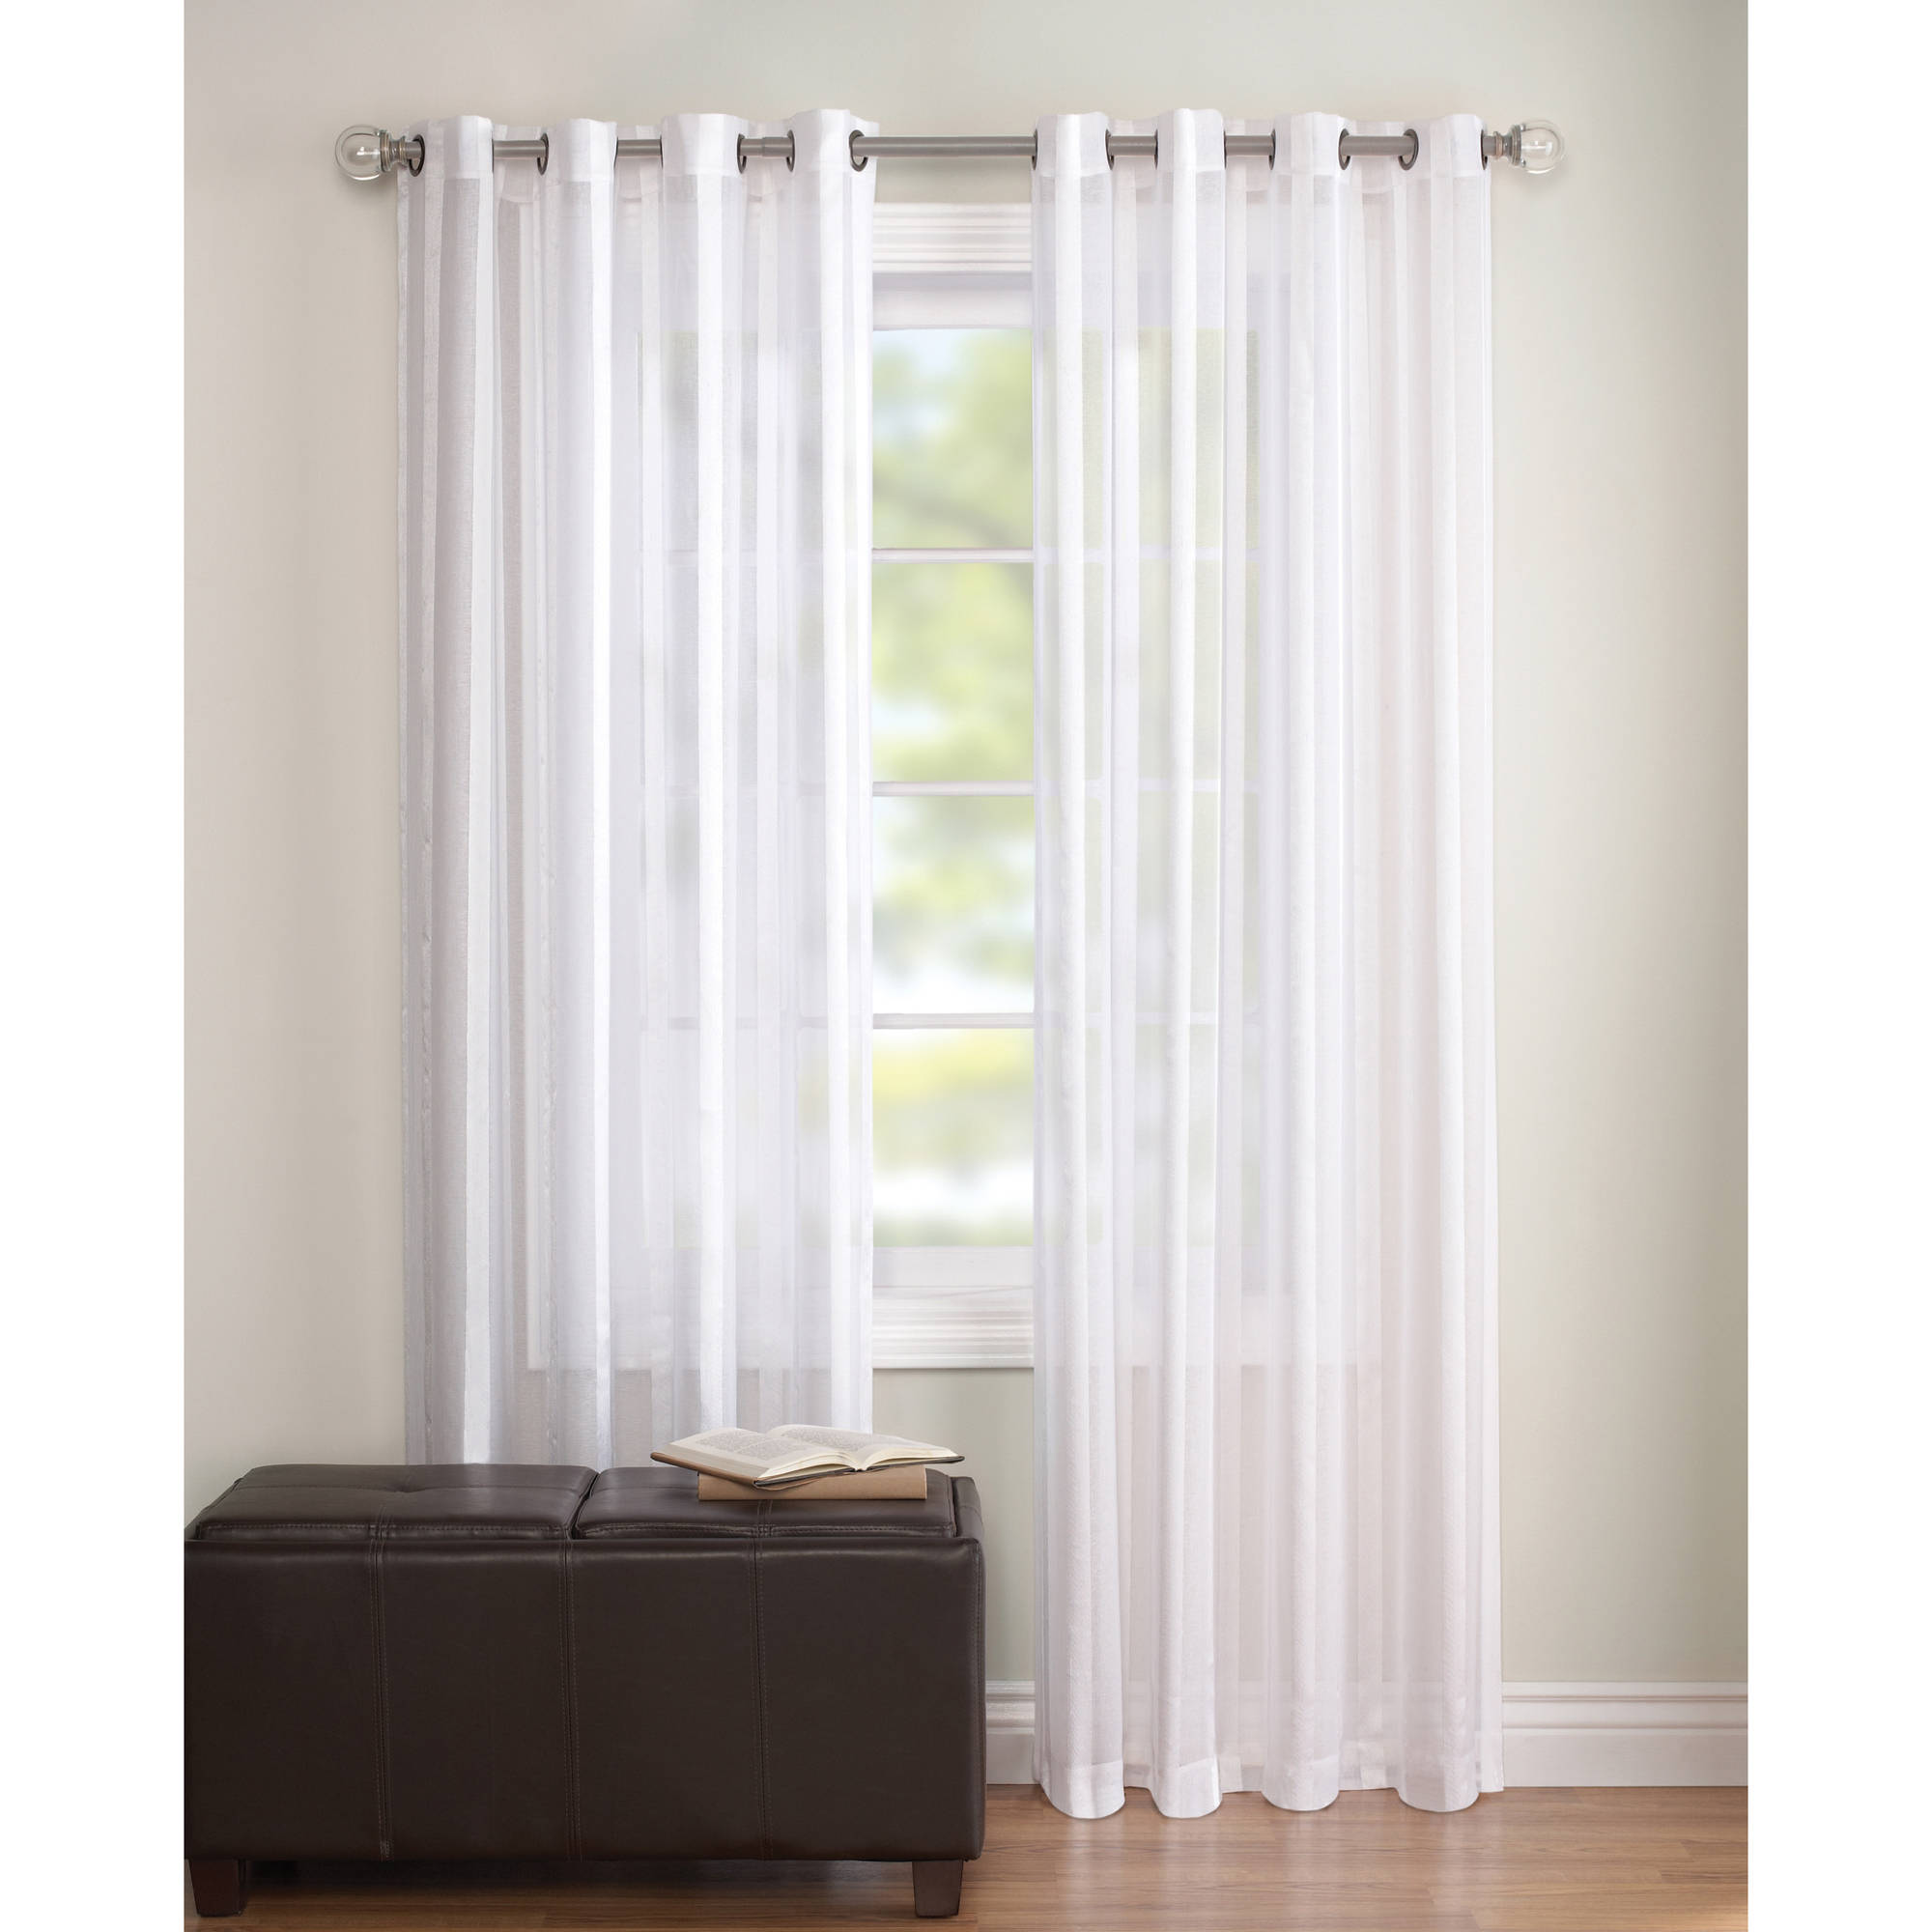 home sheer iny pnl curtain panel in infinity black products vcny panels